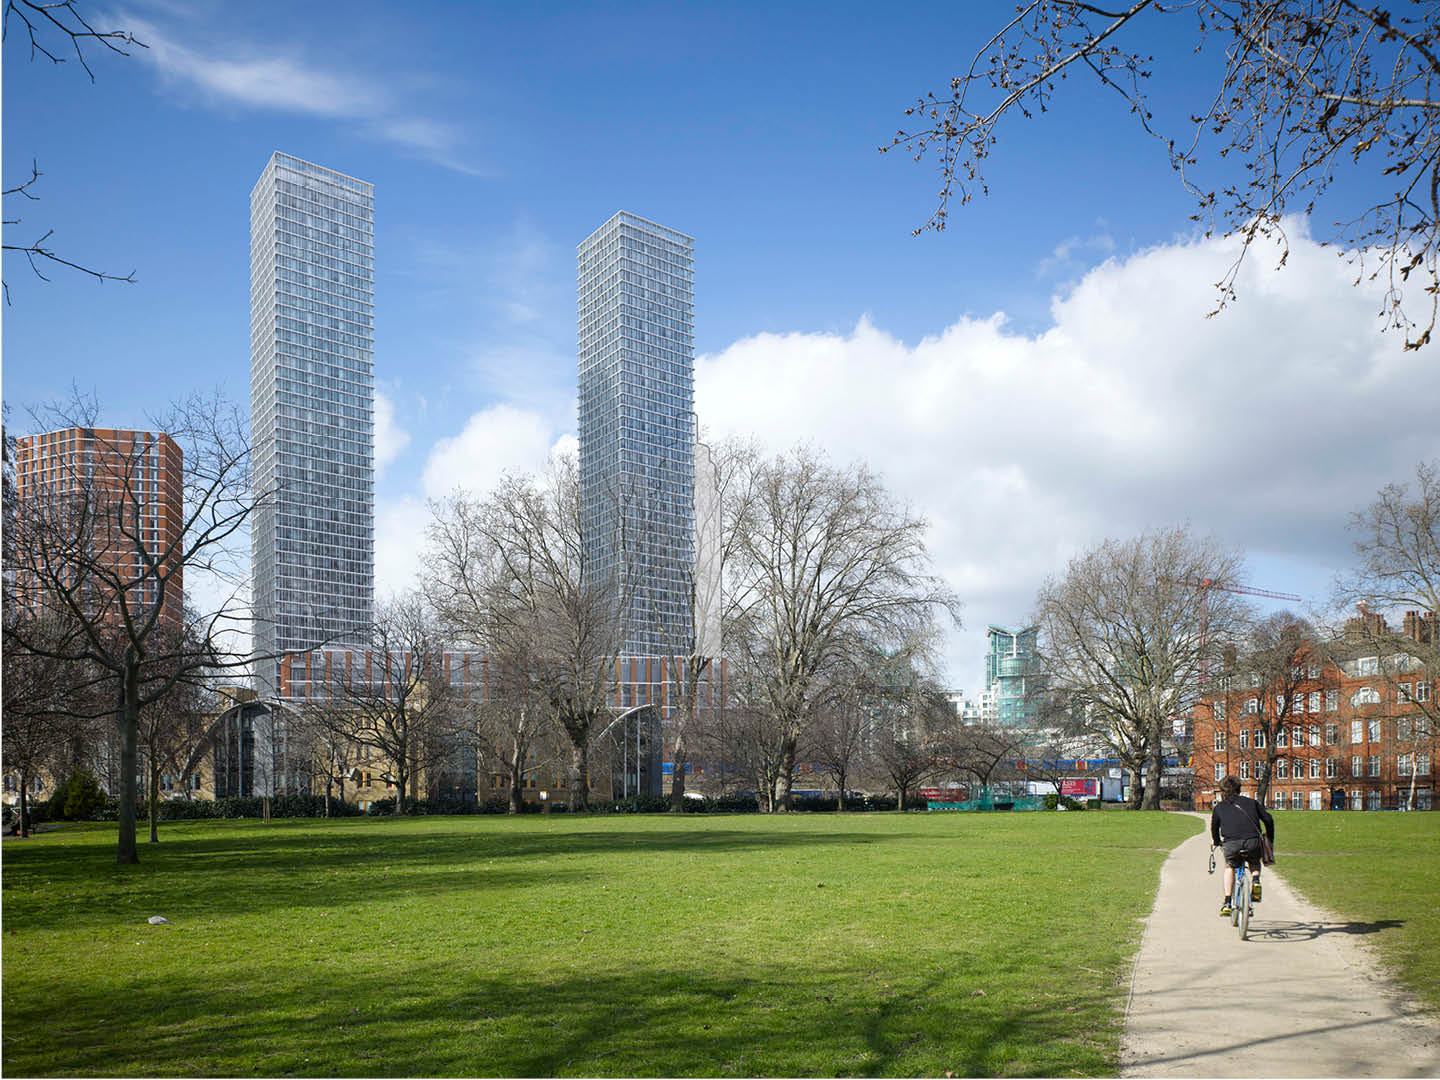 Vauxhall Square - Tall Buildings